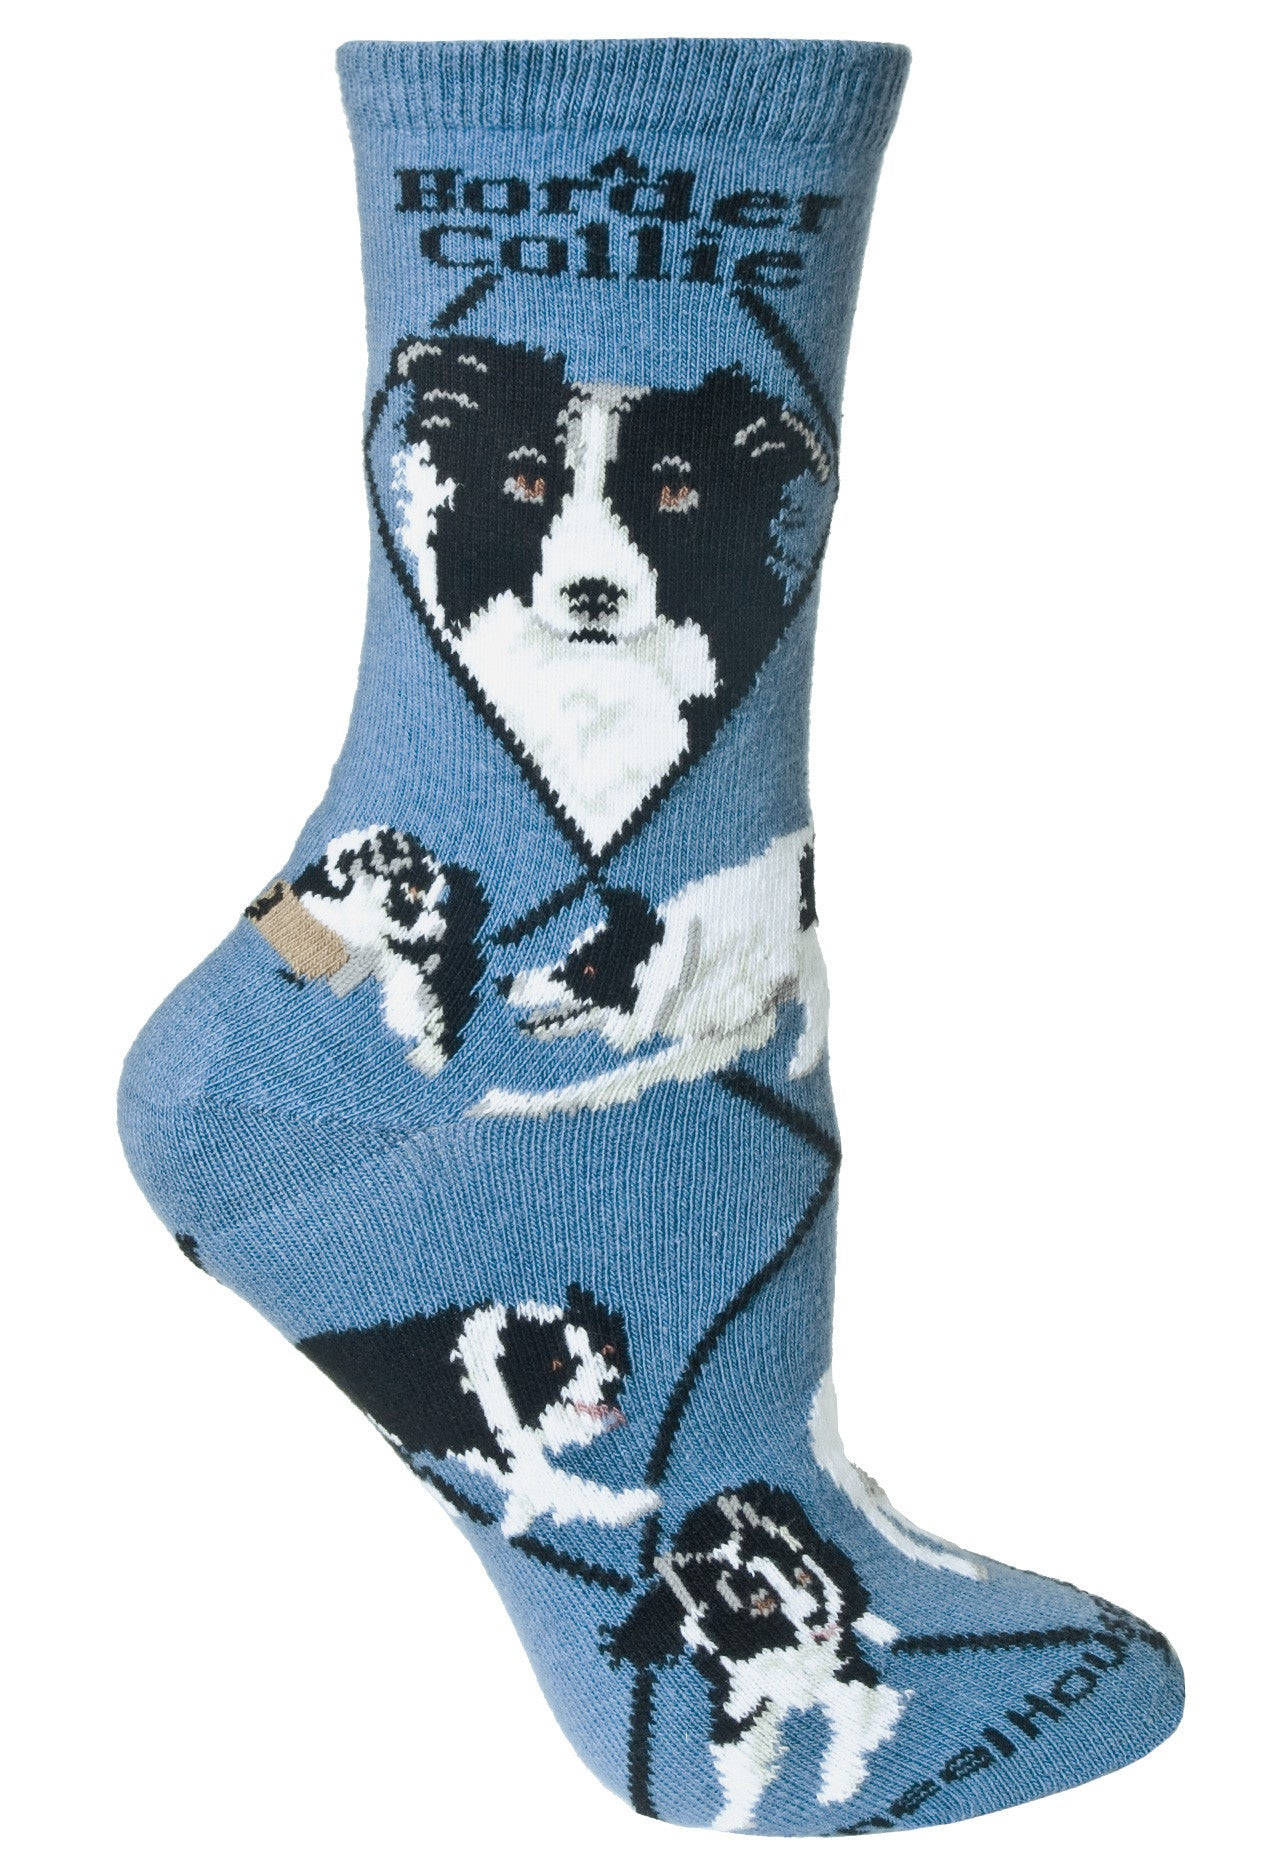 Border Collie on Blue Socks